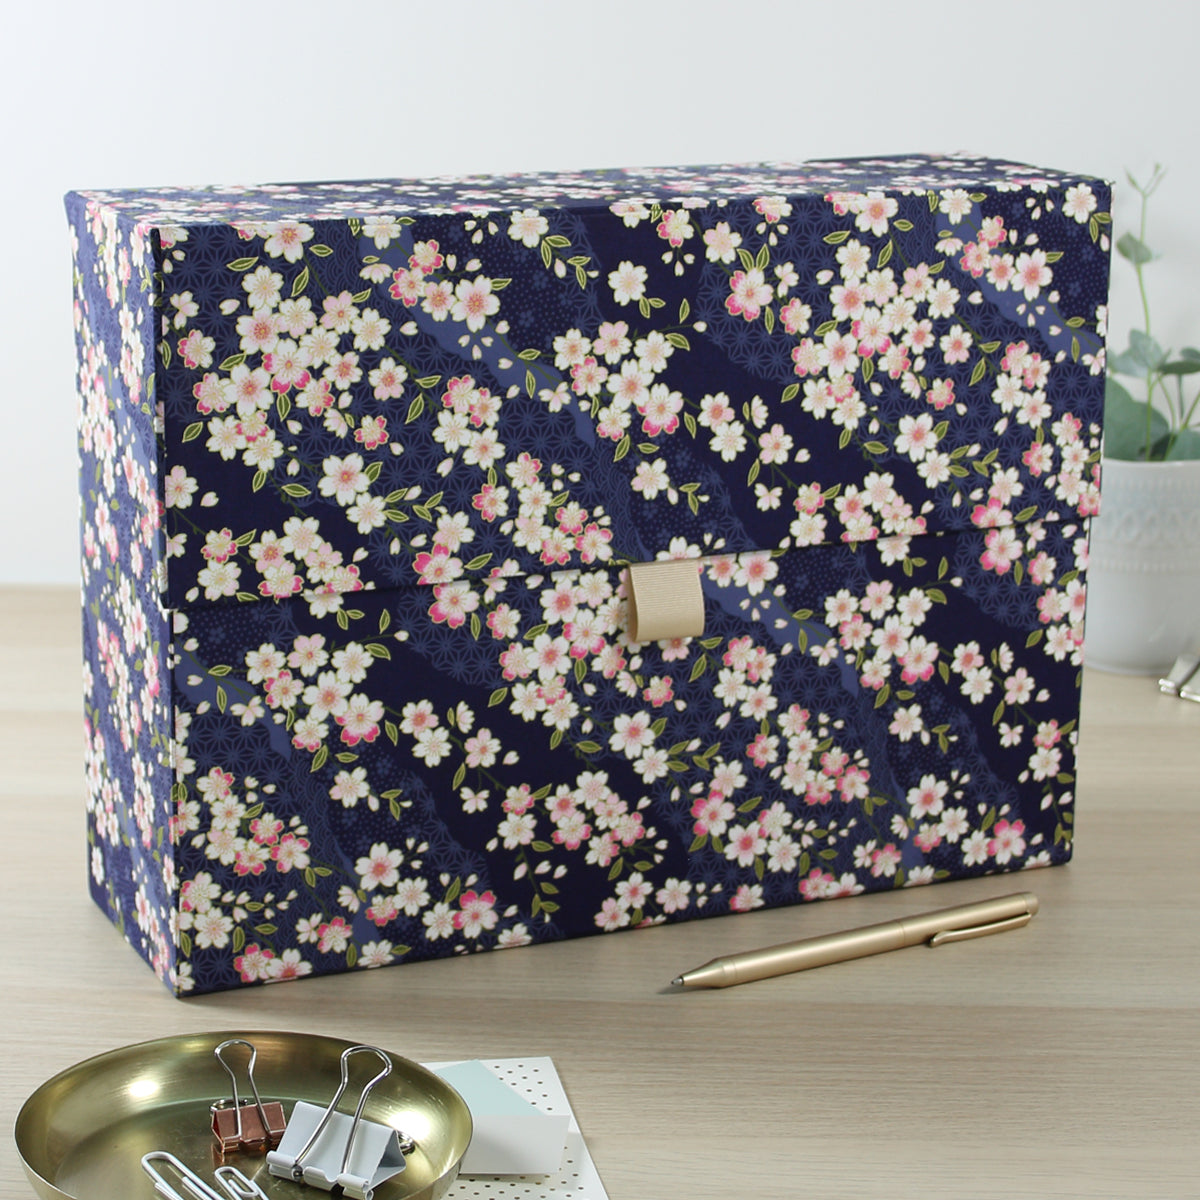 Organiser Boxes - Chiyogami